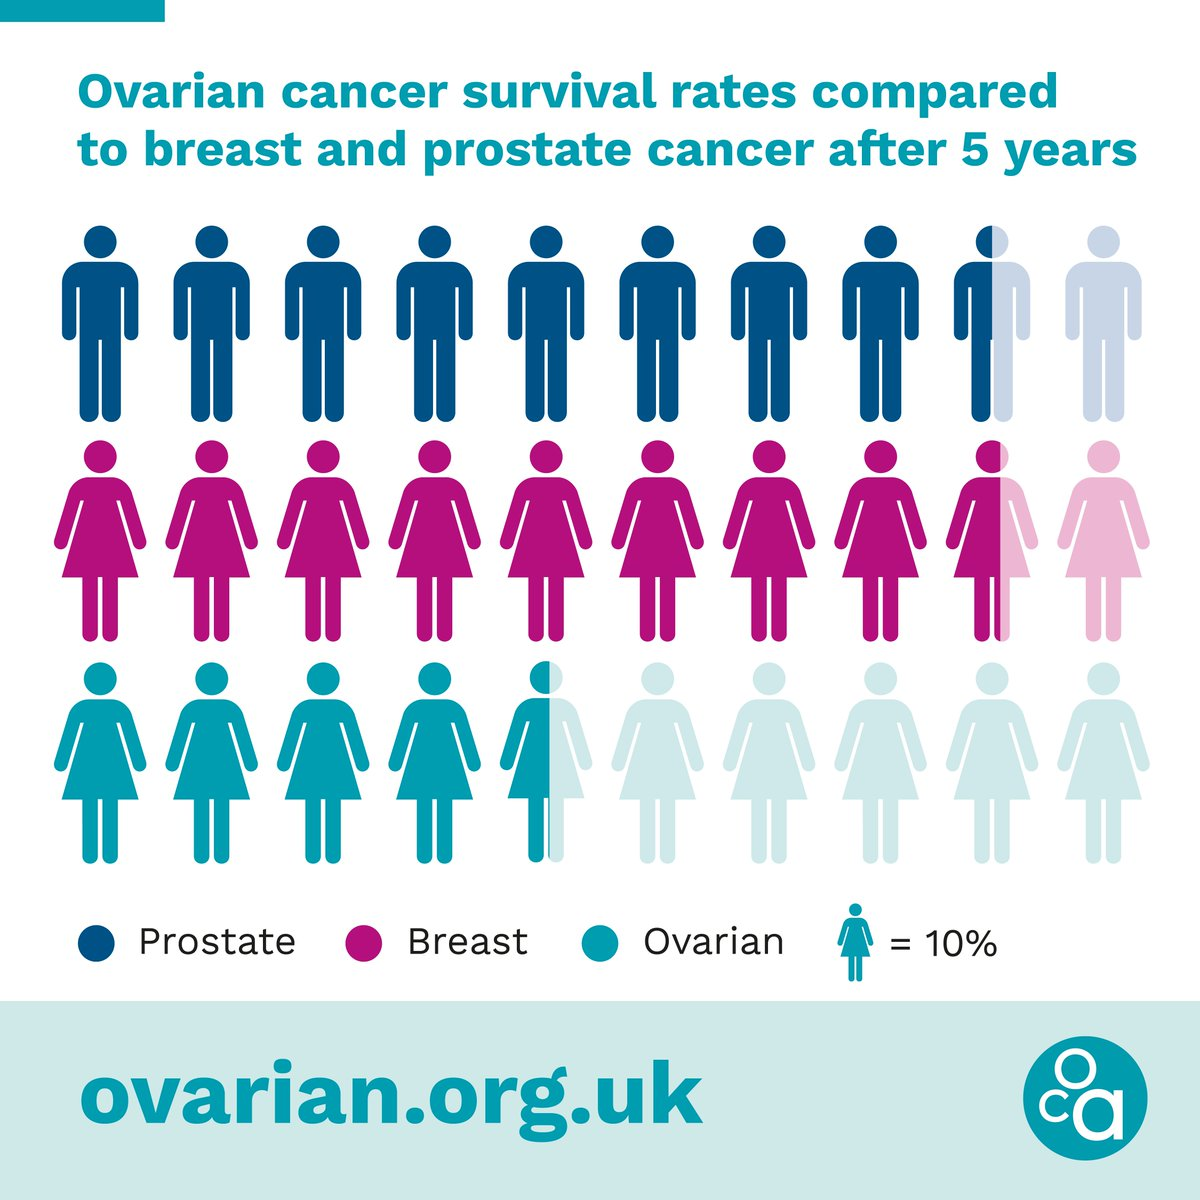 Ovarian Cancer Action On Twitter Only 46 Of Women Diagnosed With Ovarian Cancer In England And Wales Survive Their Disease For Five Years Or More This Is Compared With 85 Of Men